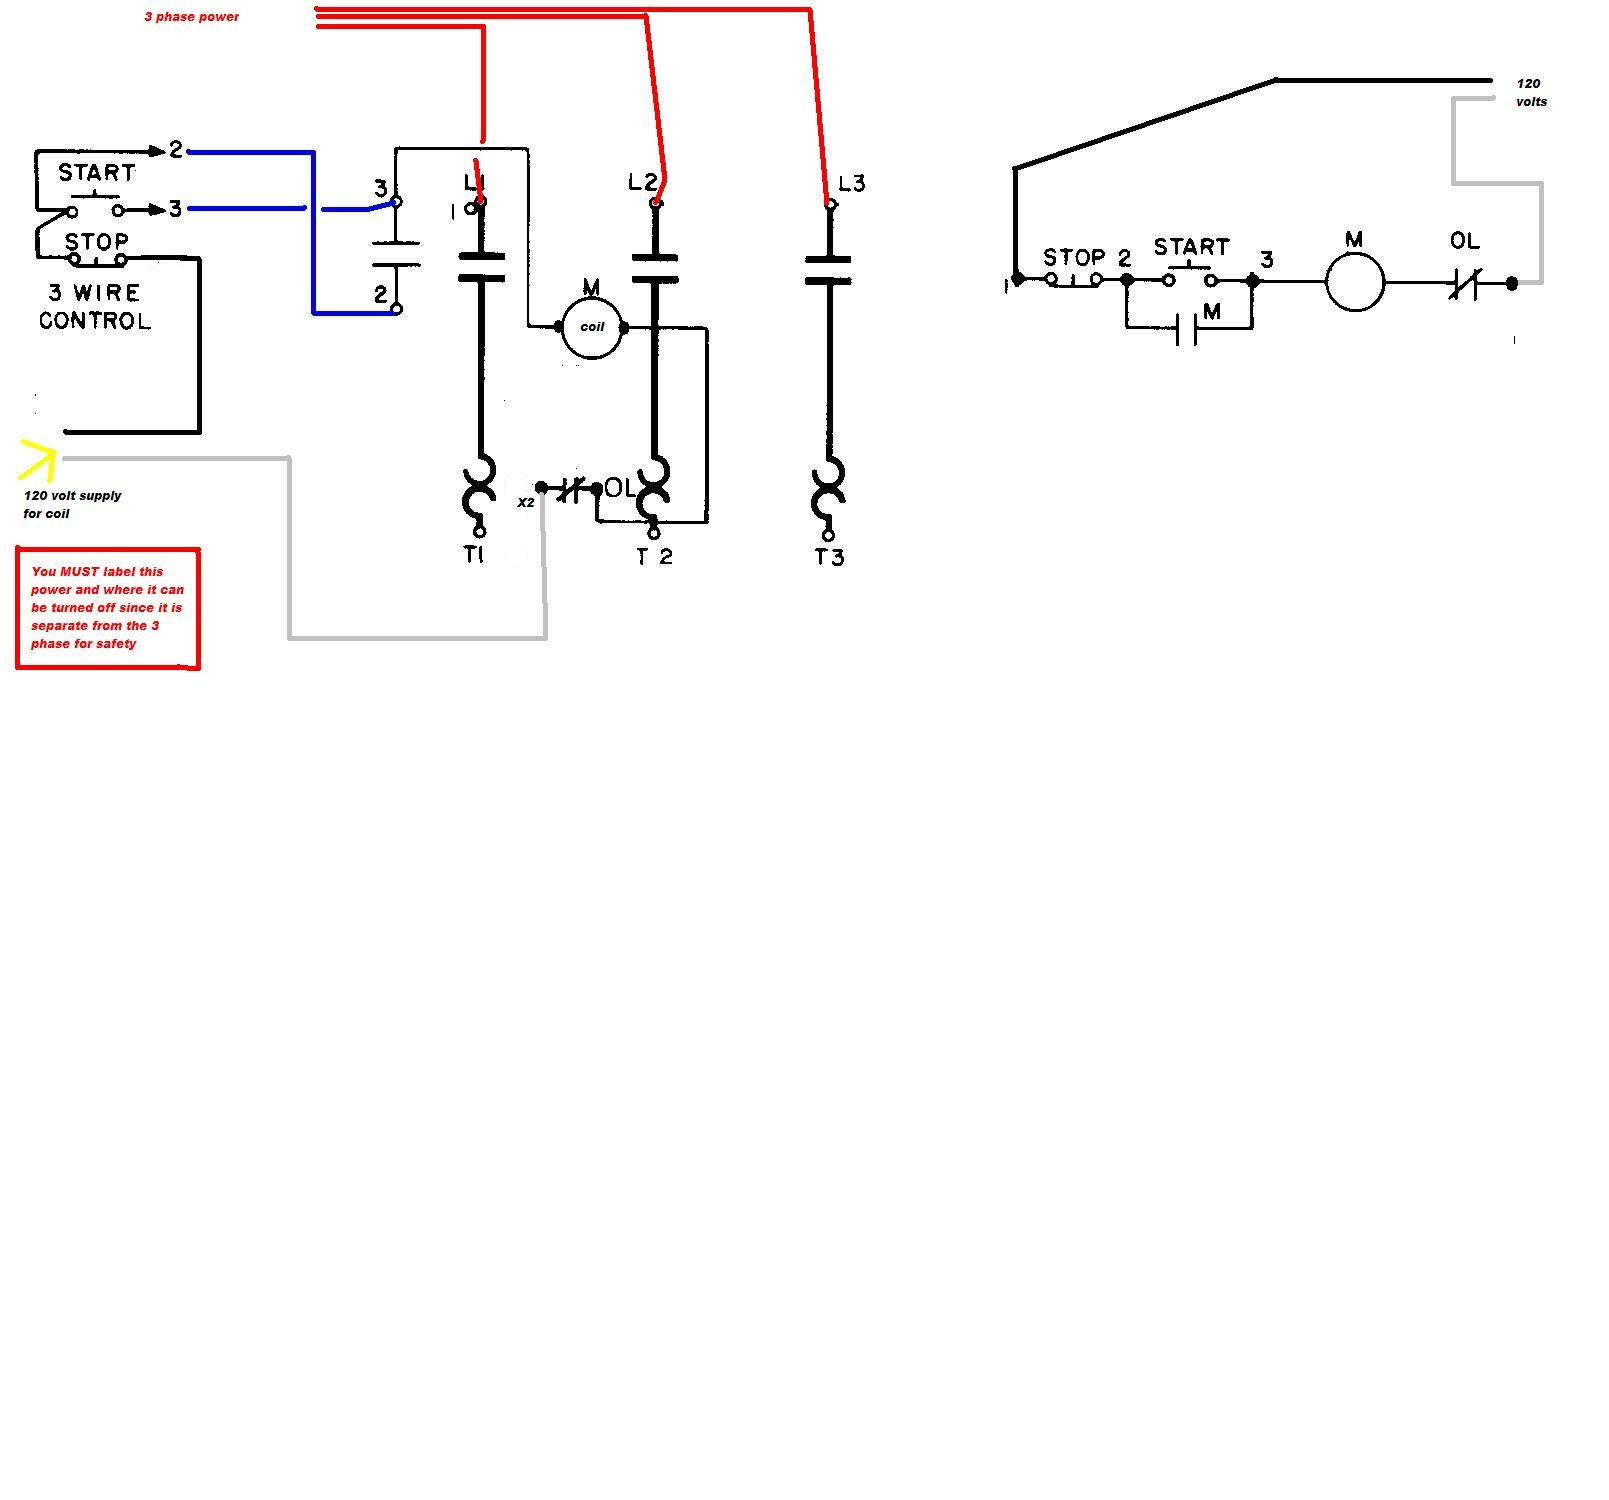 square d 8536 motor starter wiring diagram kenworth w900 radio diagrams library 3 phase start stop fresh i have a 240v